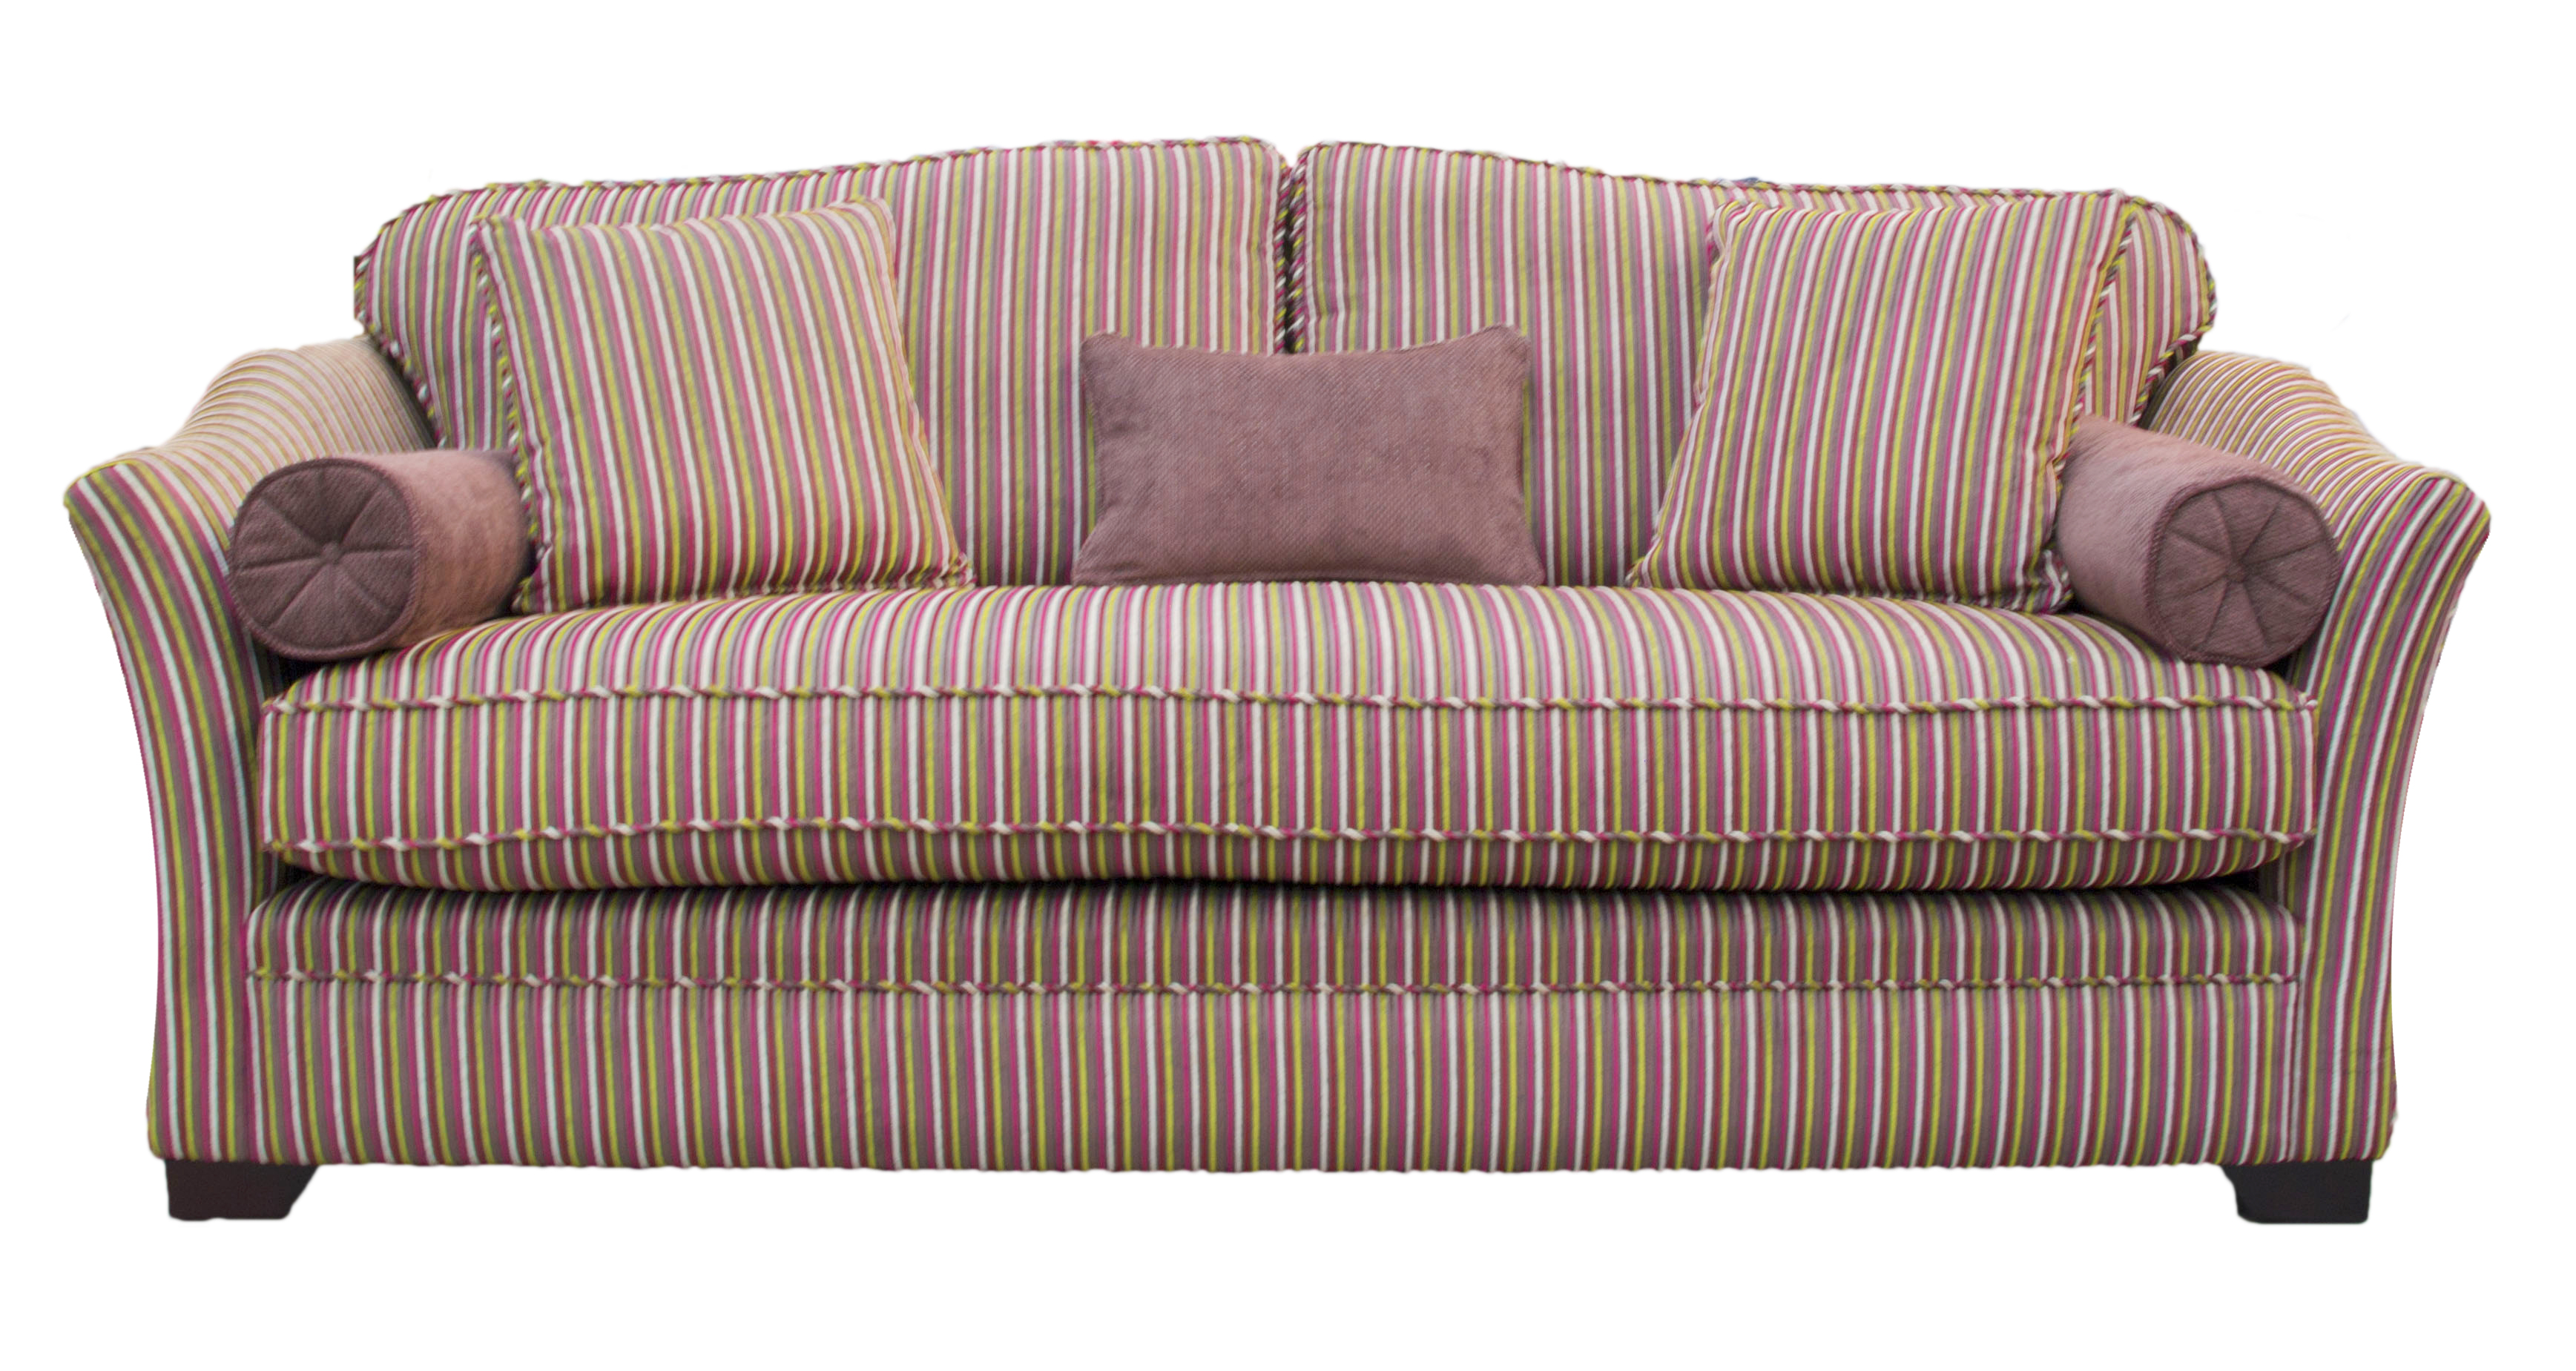 Othello Sofas And Chairs Range Finline Furniture